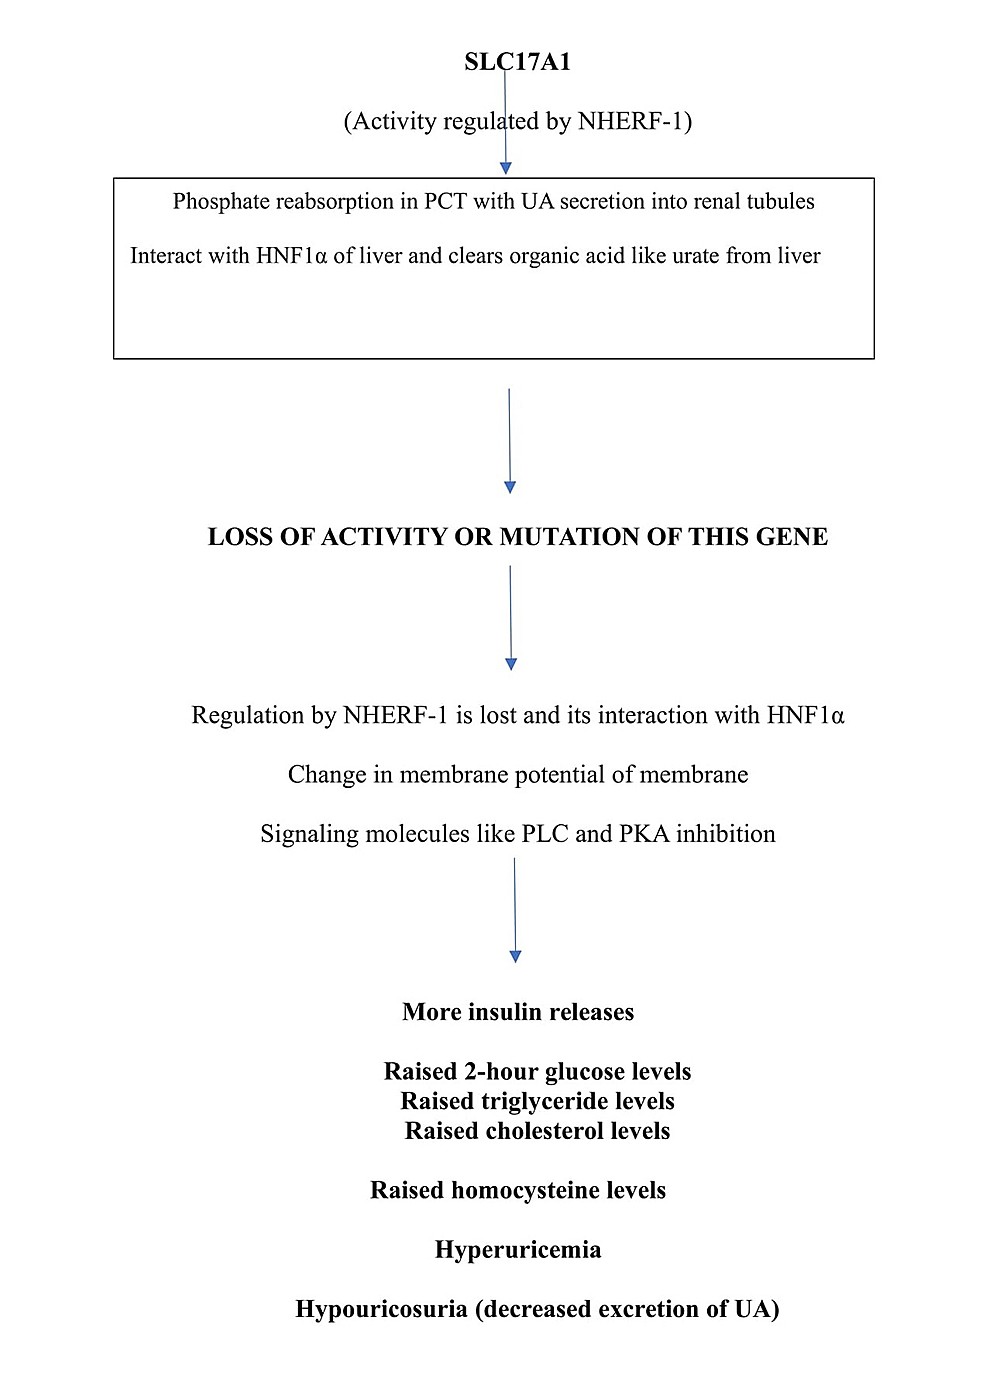 Flow-chart-showing-functions-of-SLC17A1-gene-and-consequences-of-its-mutation.